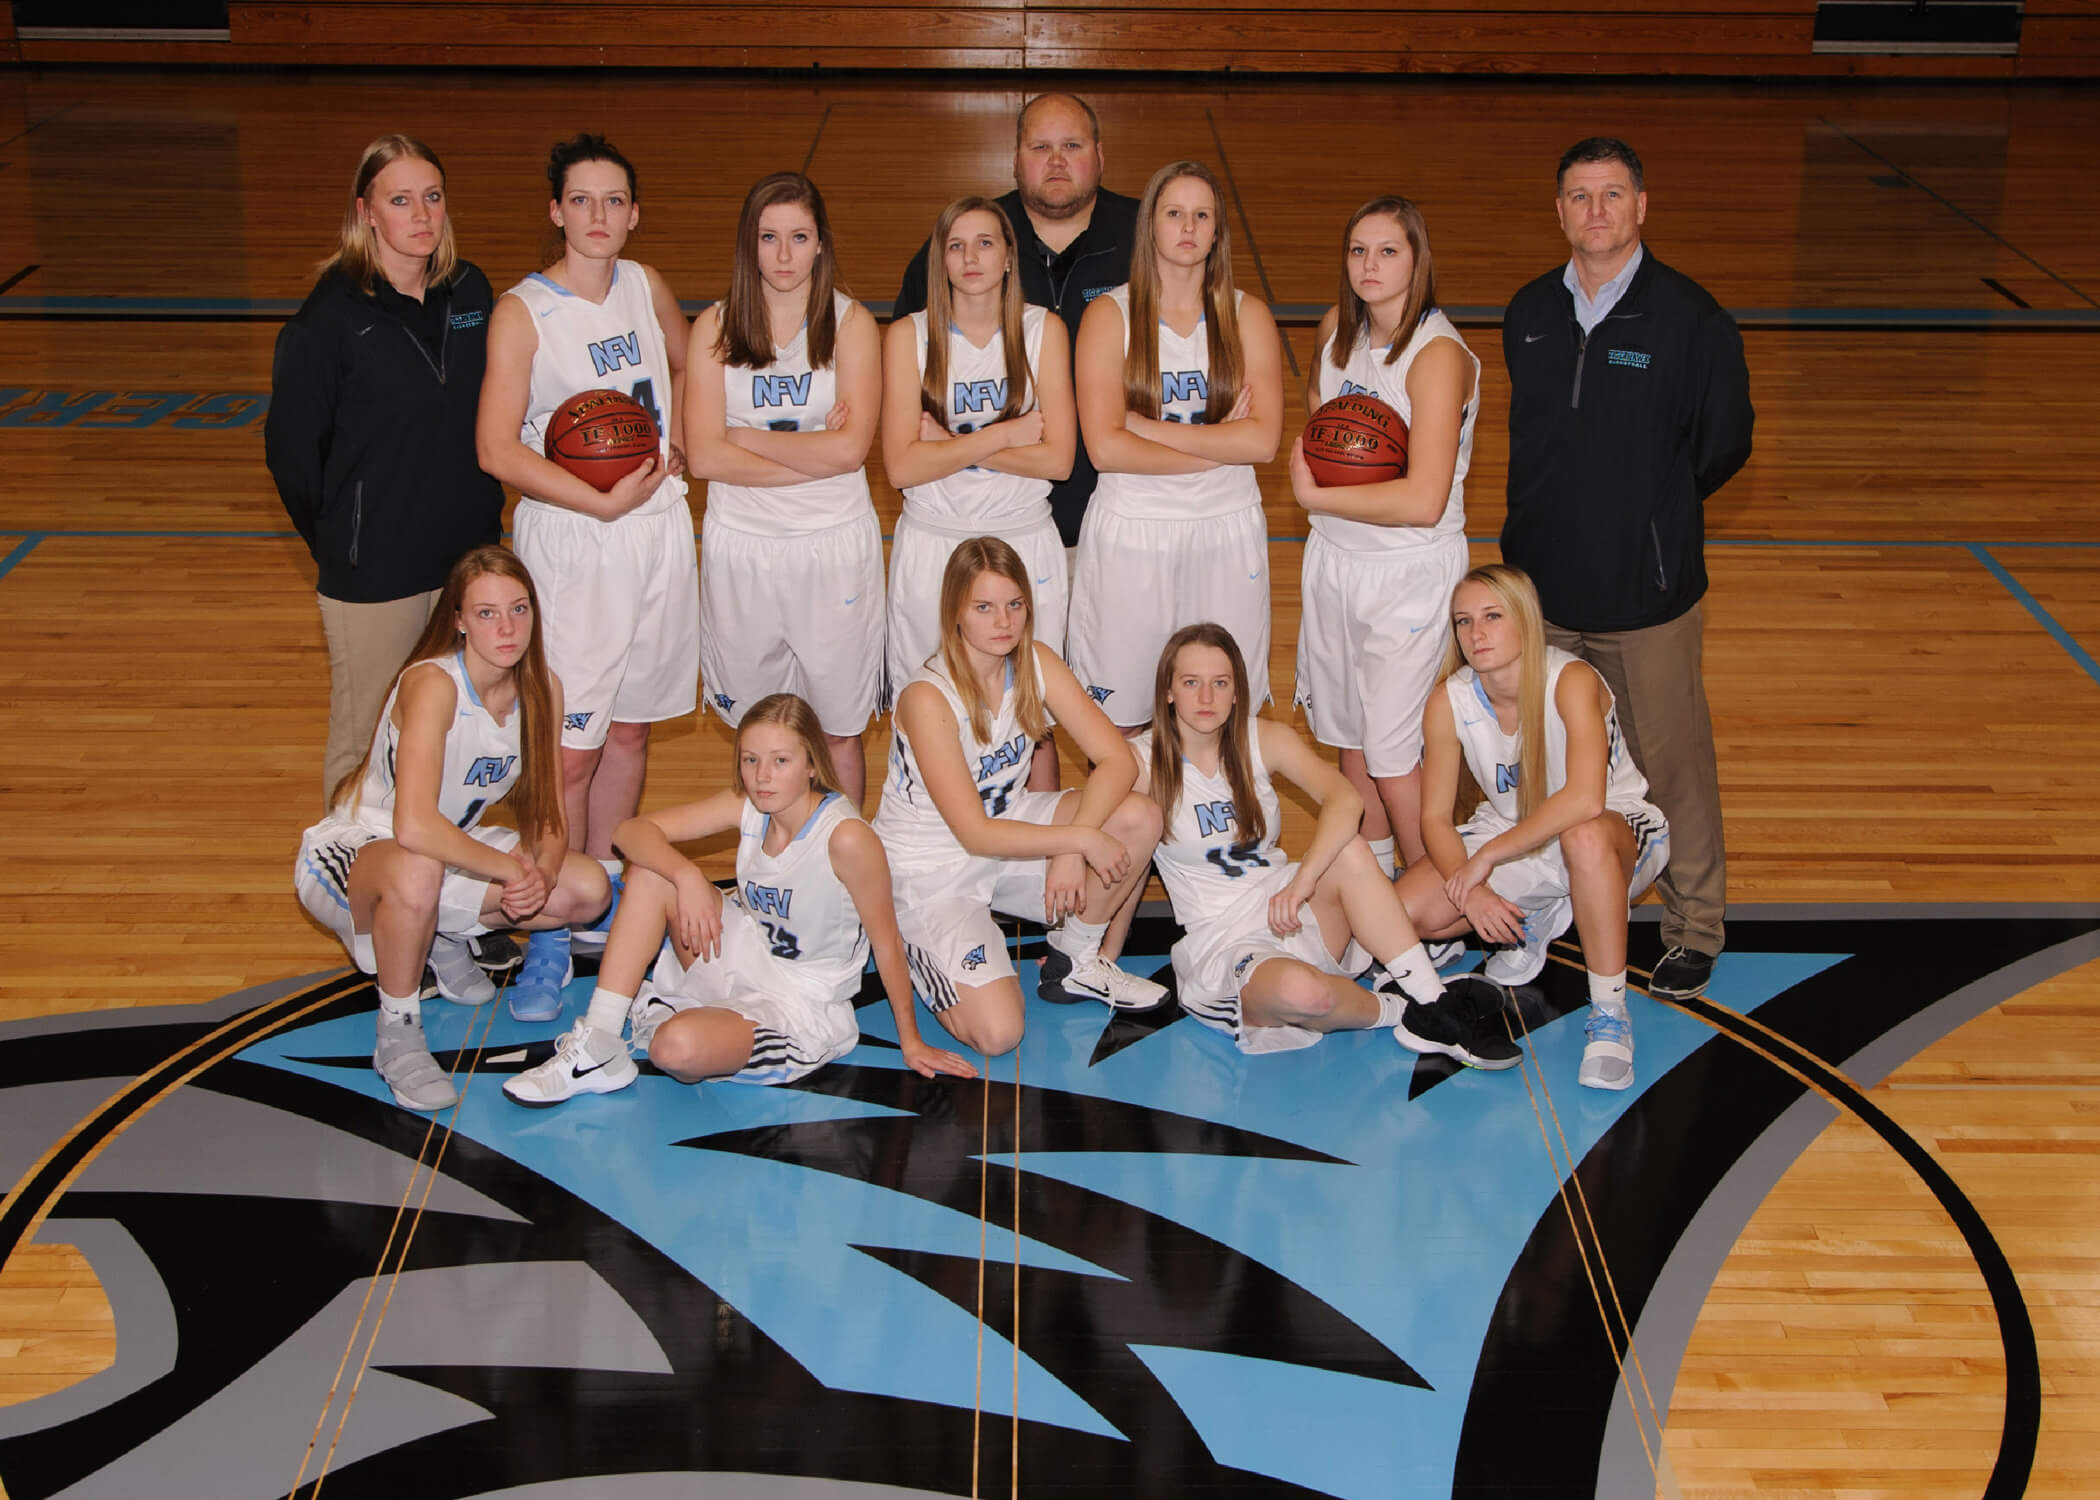 NFV High School Girls Basketball 2018 Varsity Team Photograph